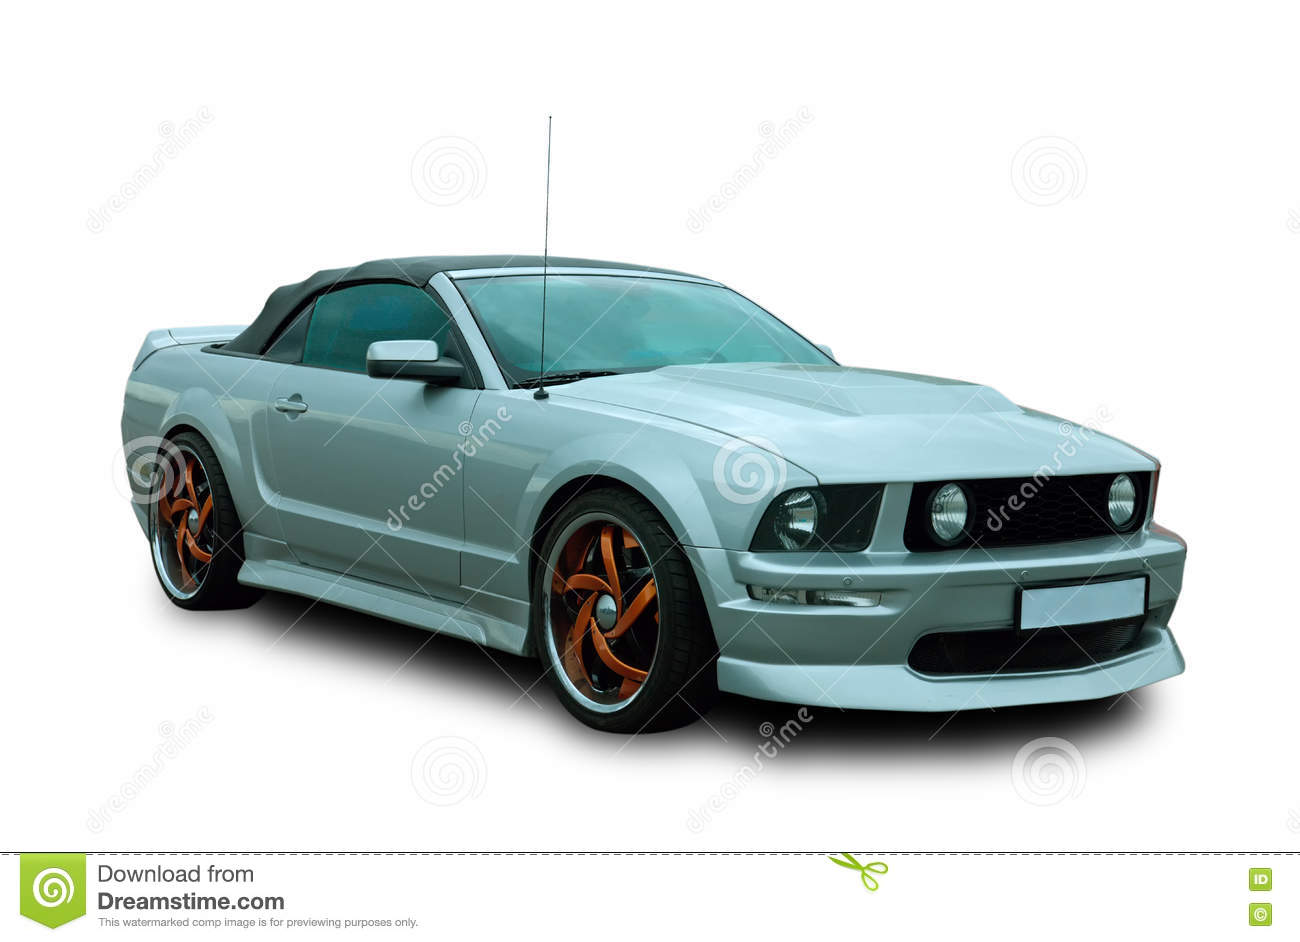 American muscle car editorial stock image. Image of convertible ...